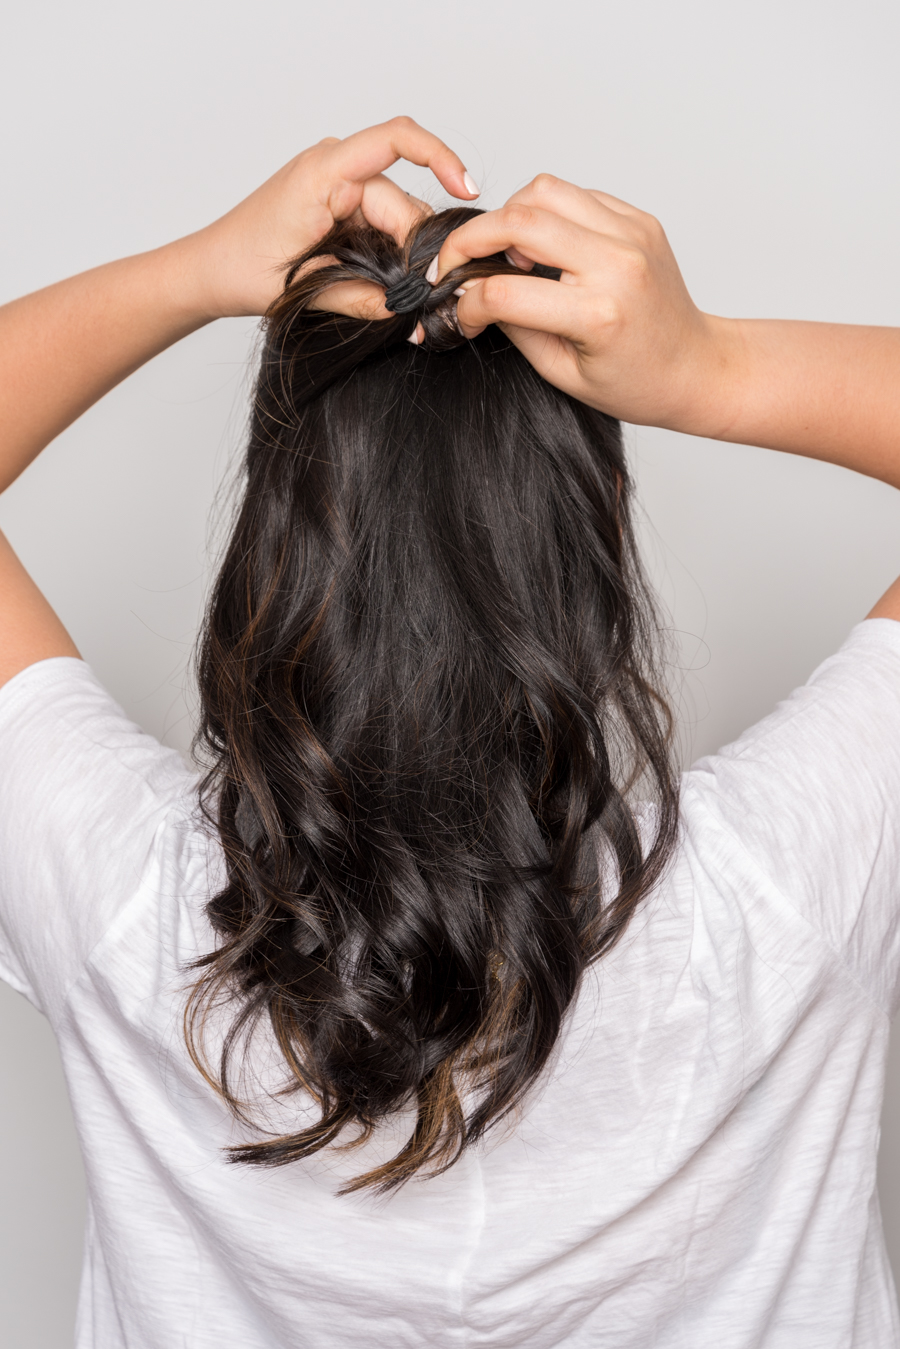 ROCK MAMA NYC LIFESTYLE BLOG - Super Easy 3minutes Hairstyle